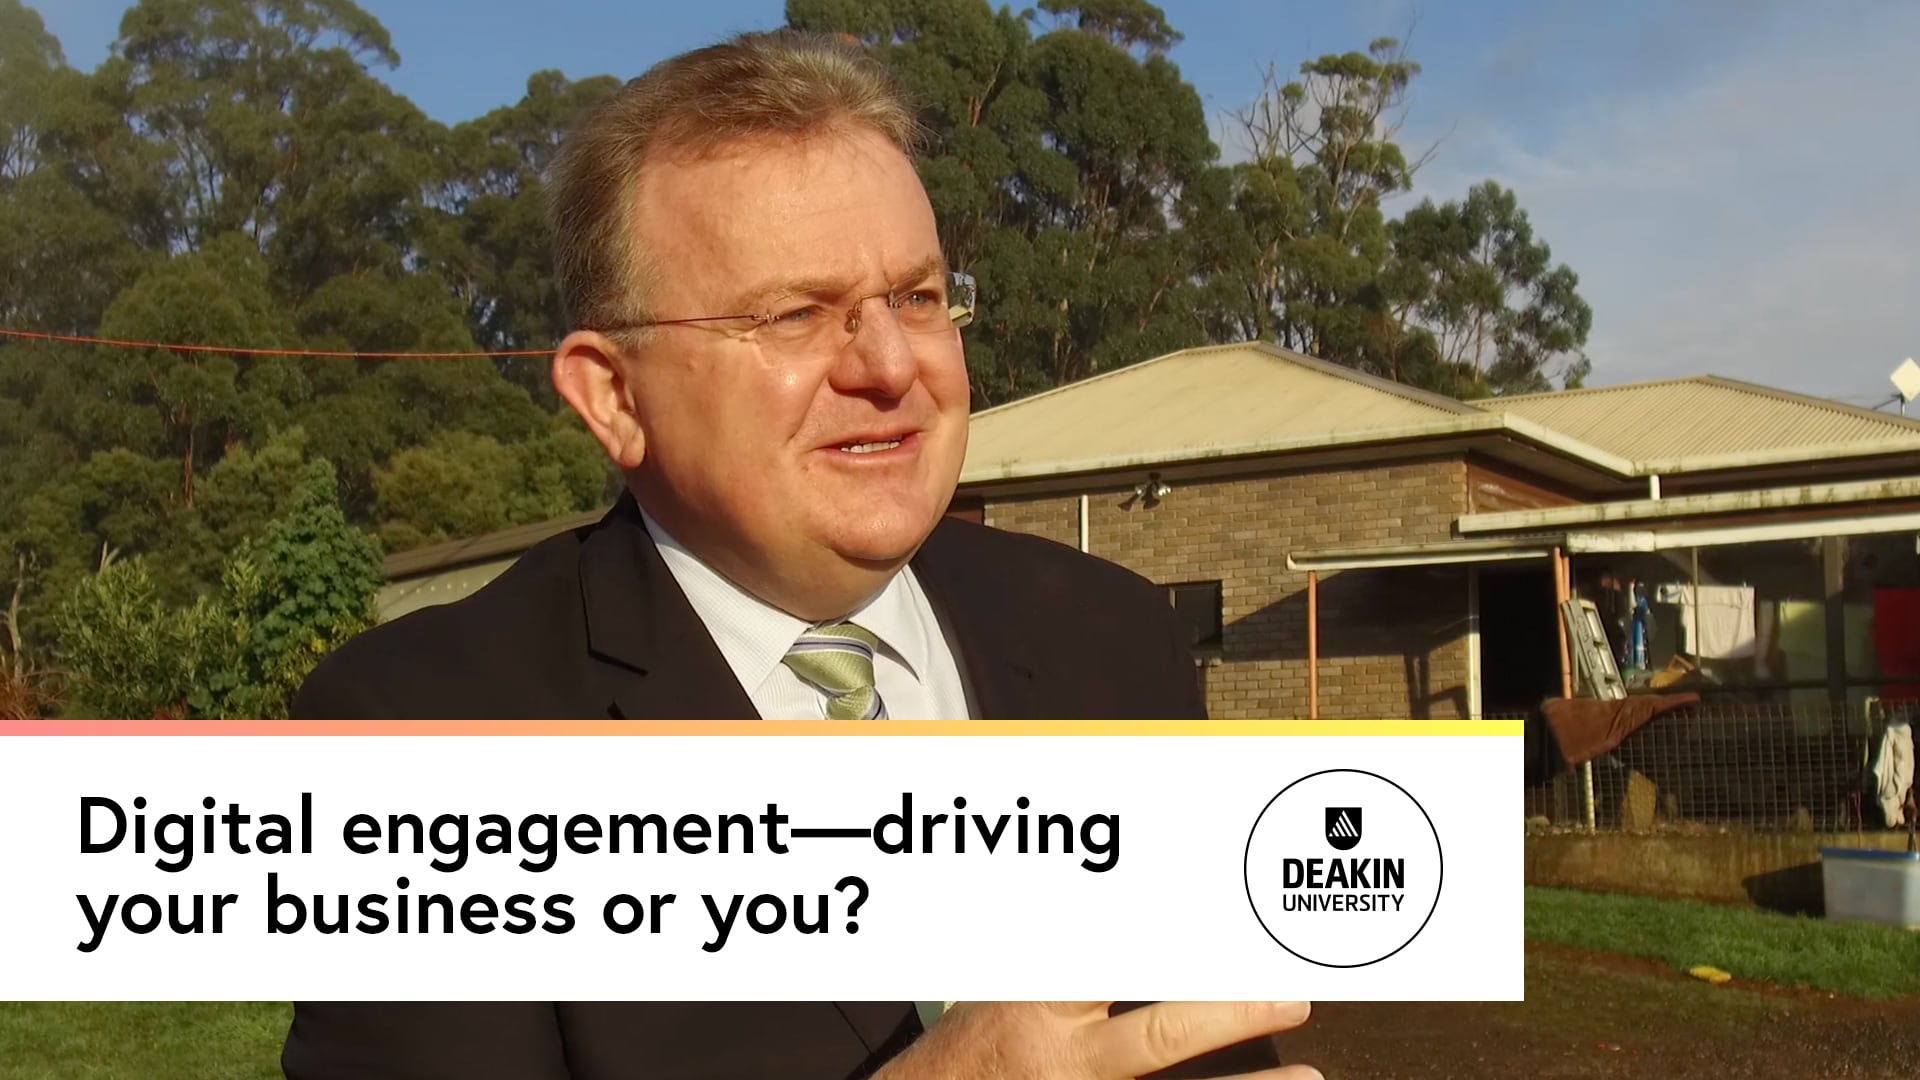 Digital engagement—driving your business or you?